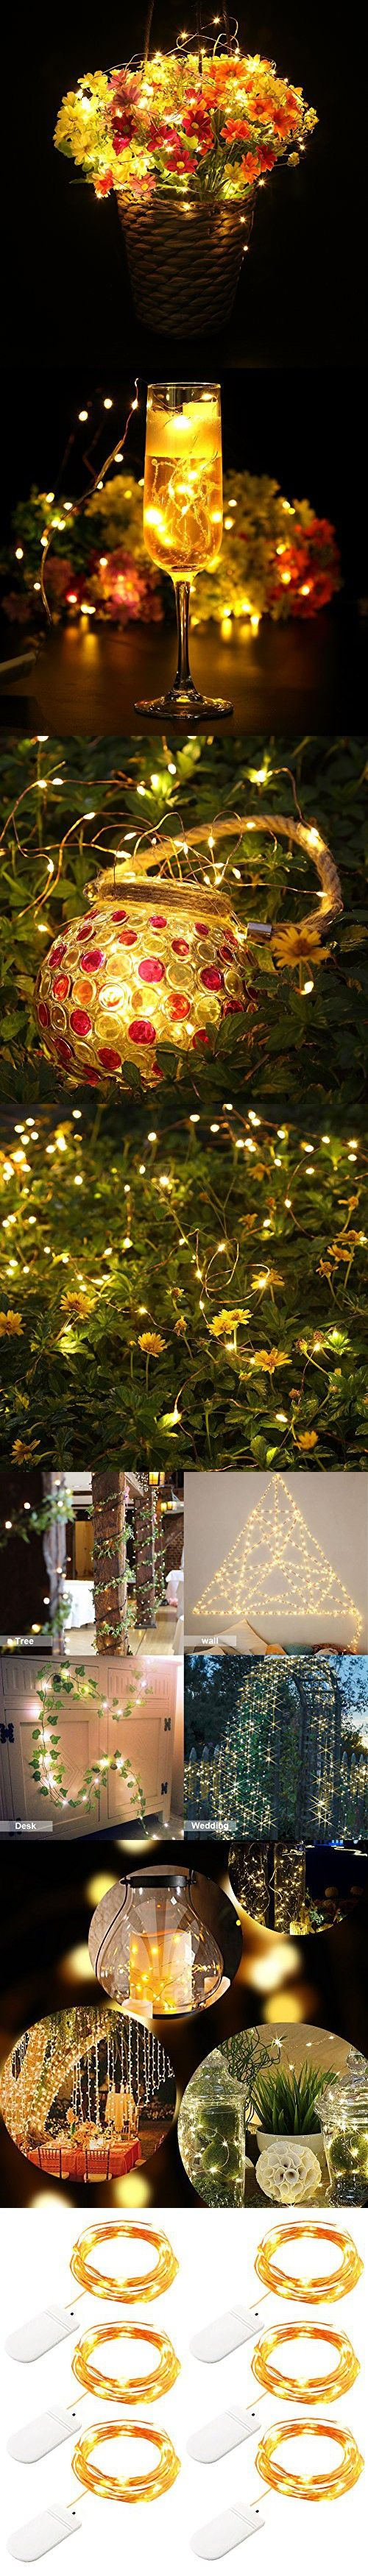 Mais De 1000 Ideias Sobre Starry String Lights No Pinterest